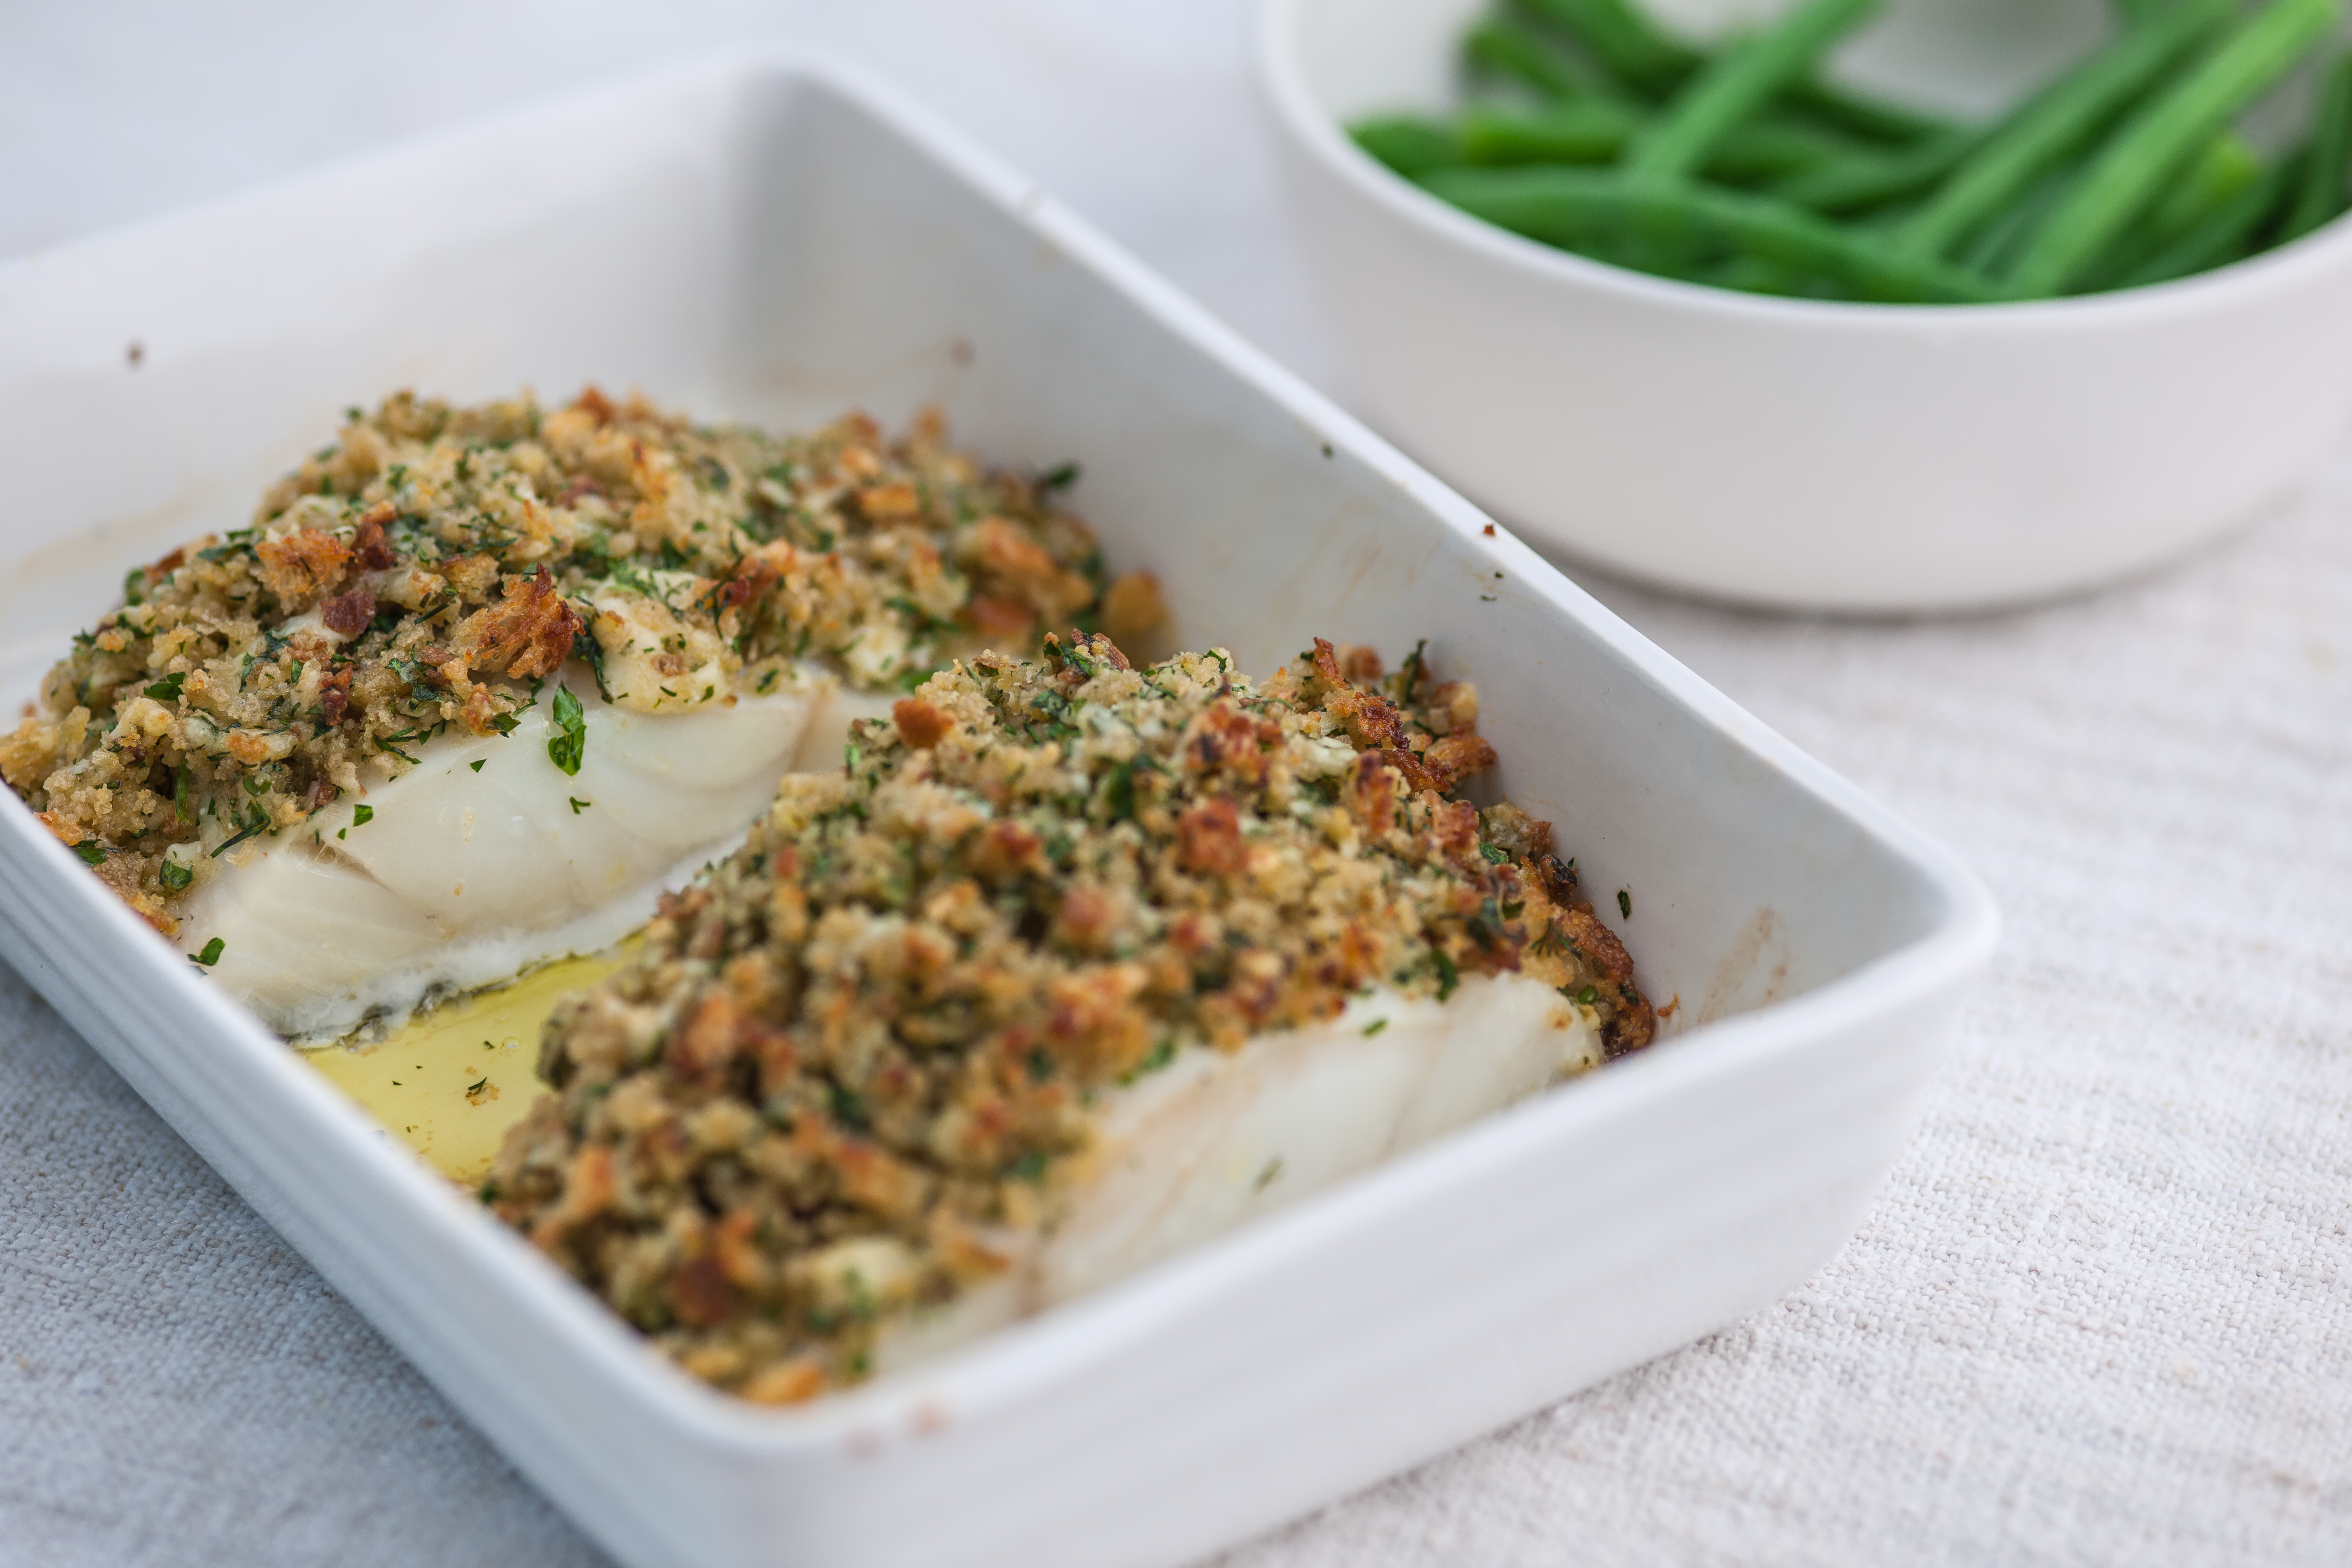 Grilled pollock. Cooking recipes 29